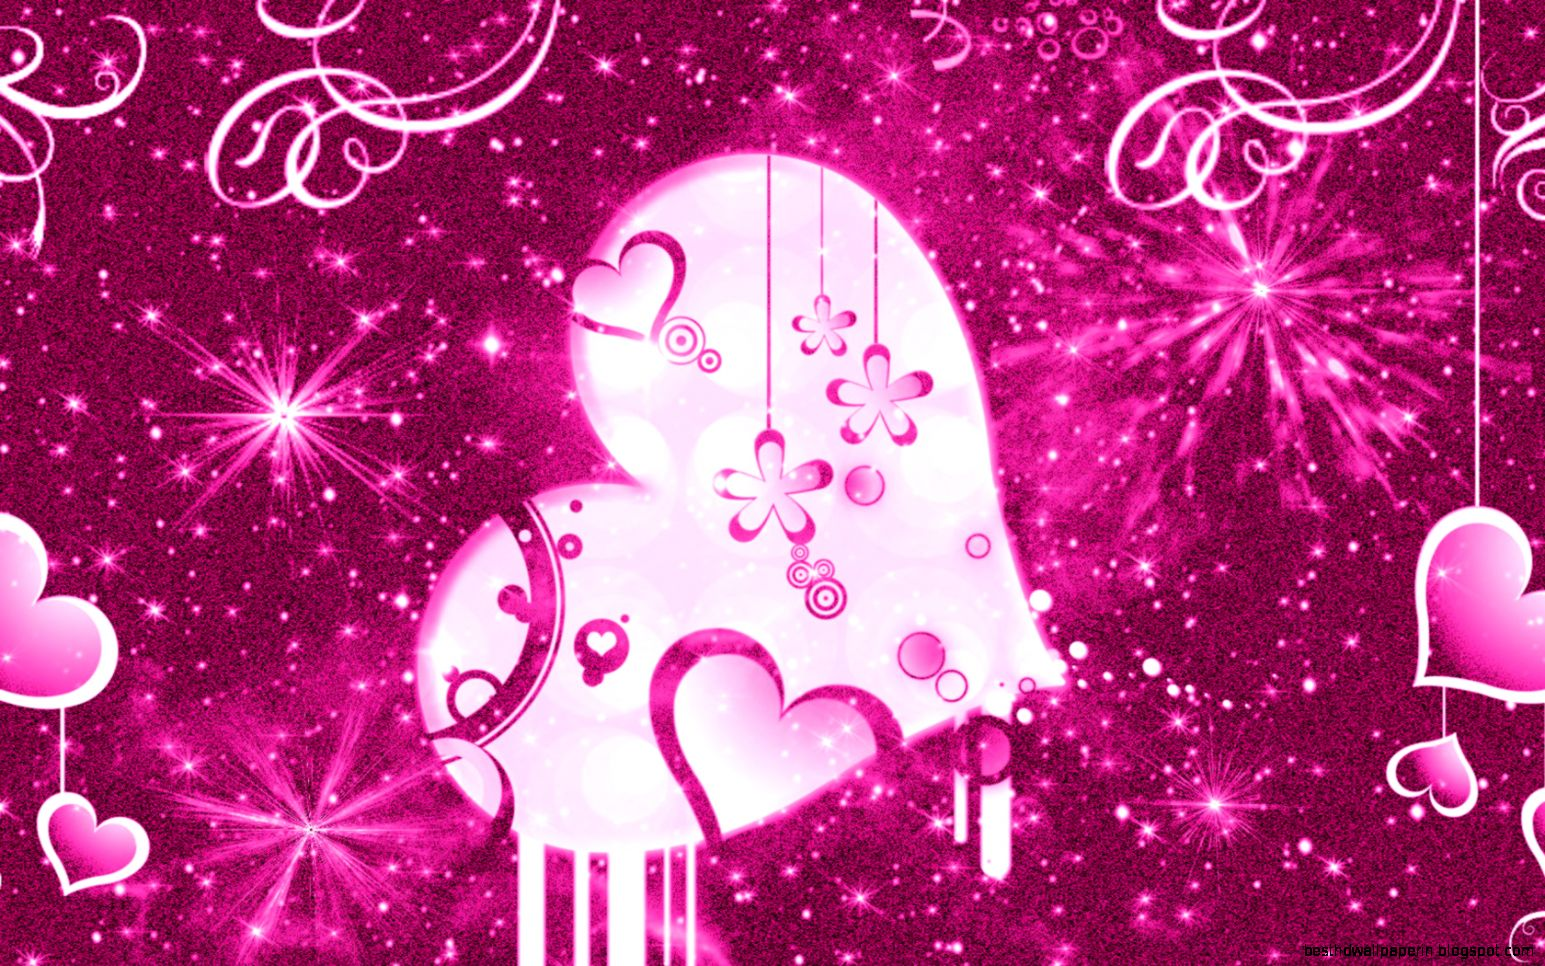 Girly background  Download free wallpapers for desktop